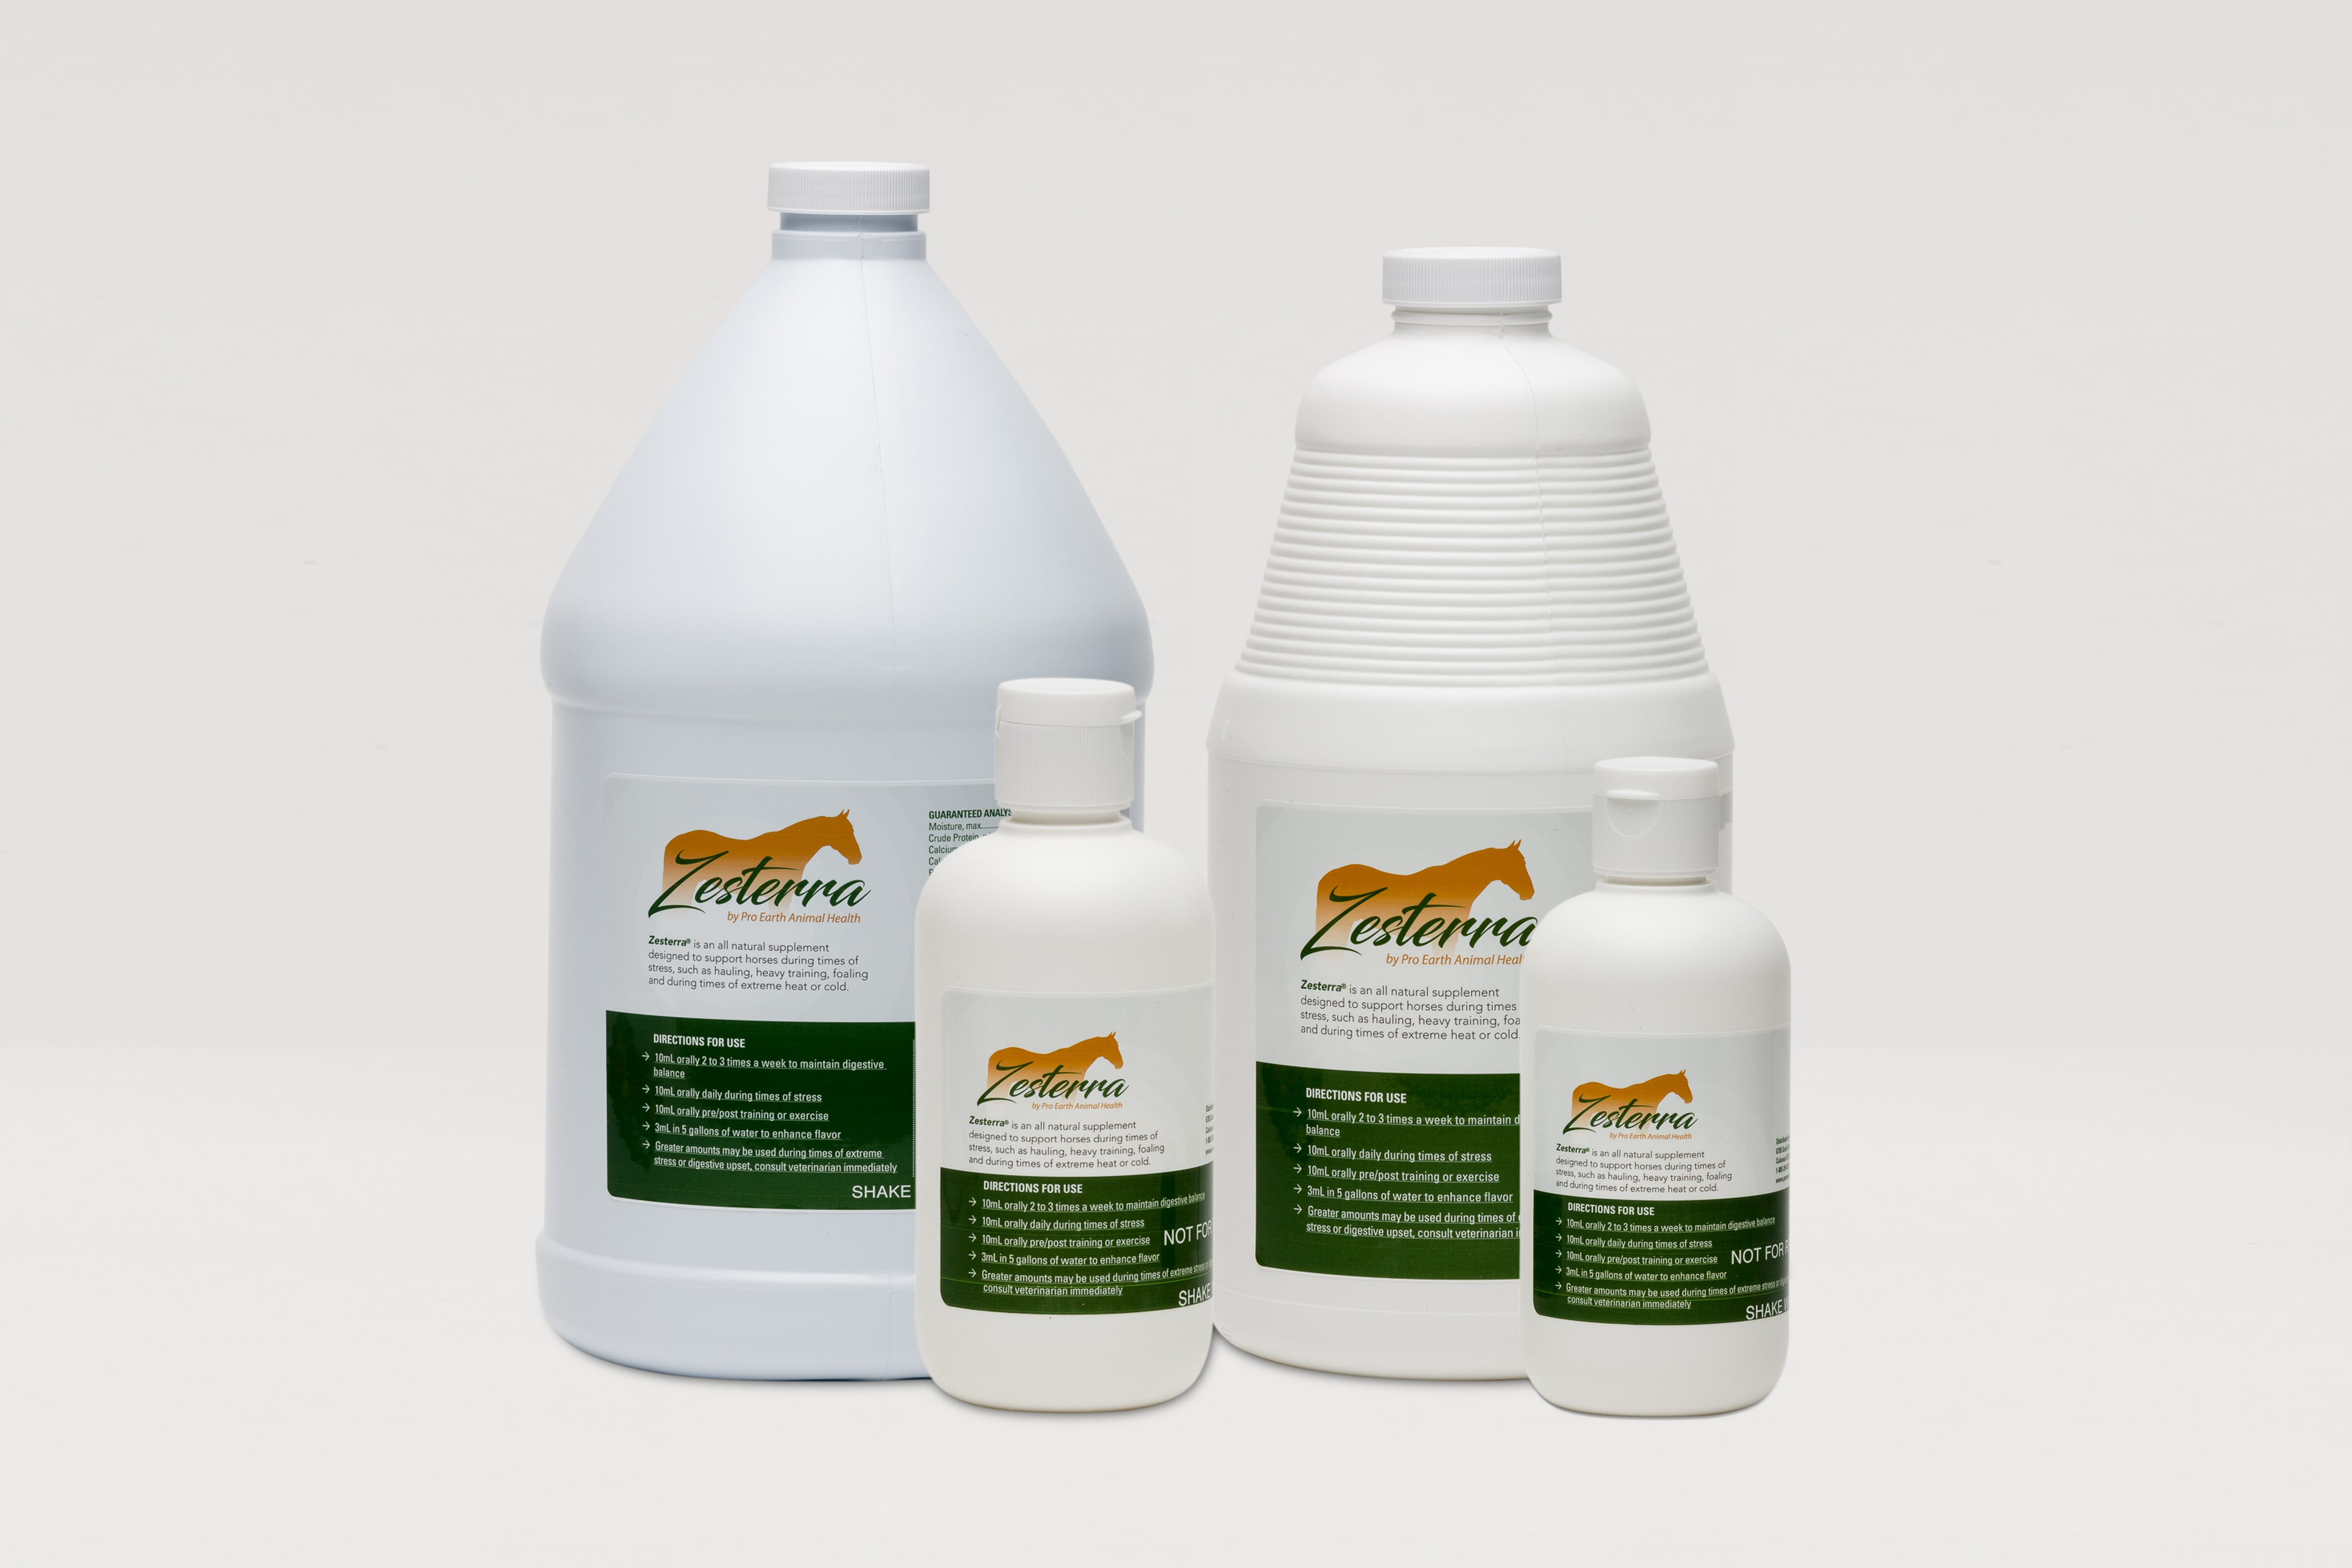 Zesterra 500 ml bottle